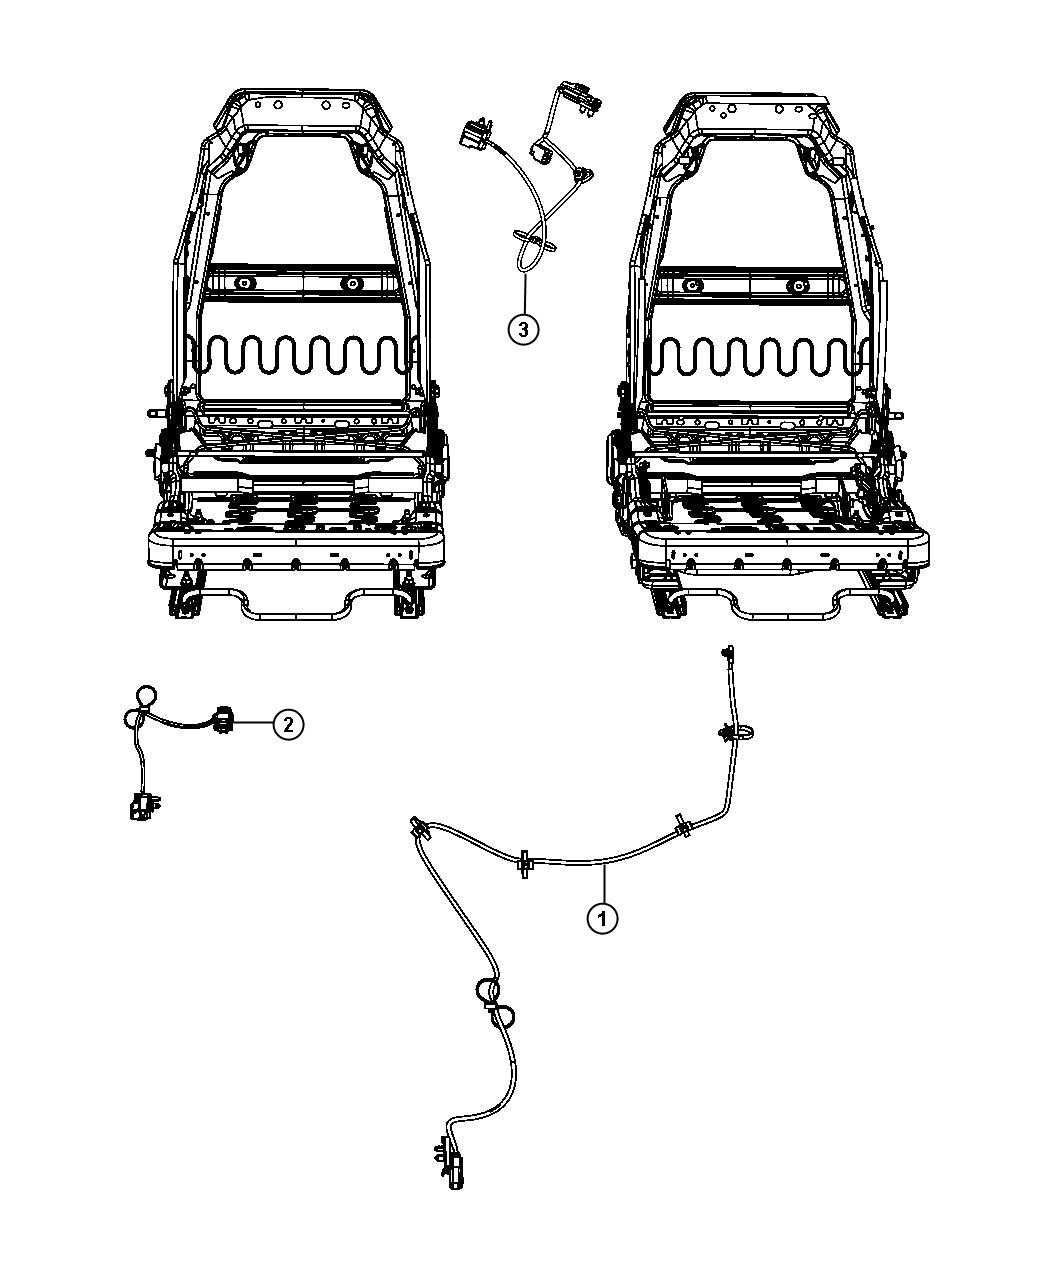 Jeep Wrangler Wiring. Seat. Export. Trim: [cloth lo-back